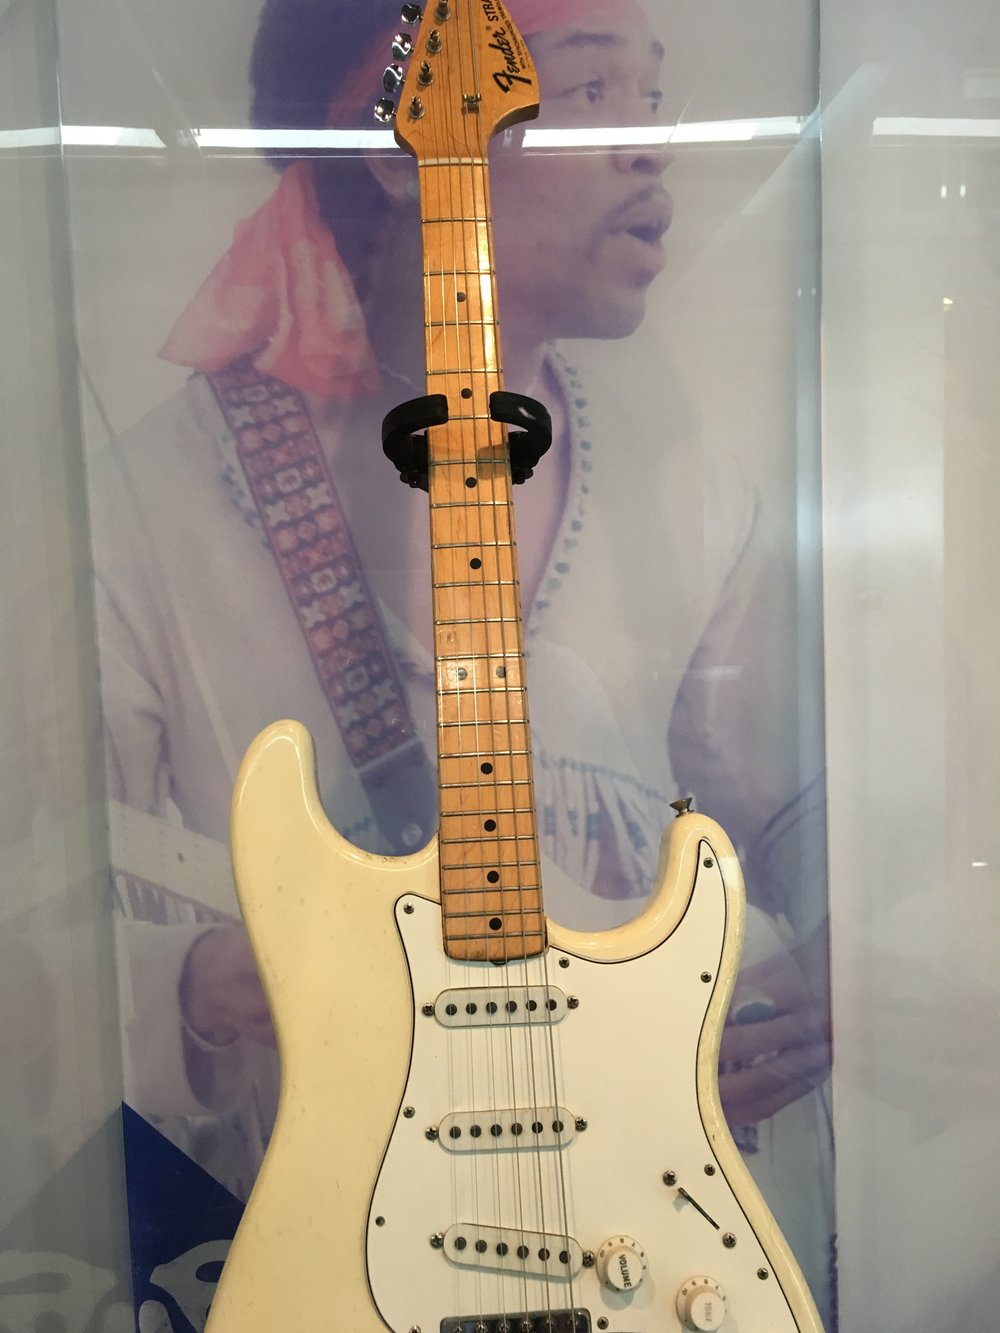 Guitar Jimi Hendrix Played at Woodstock